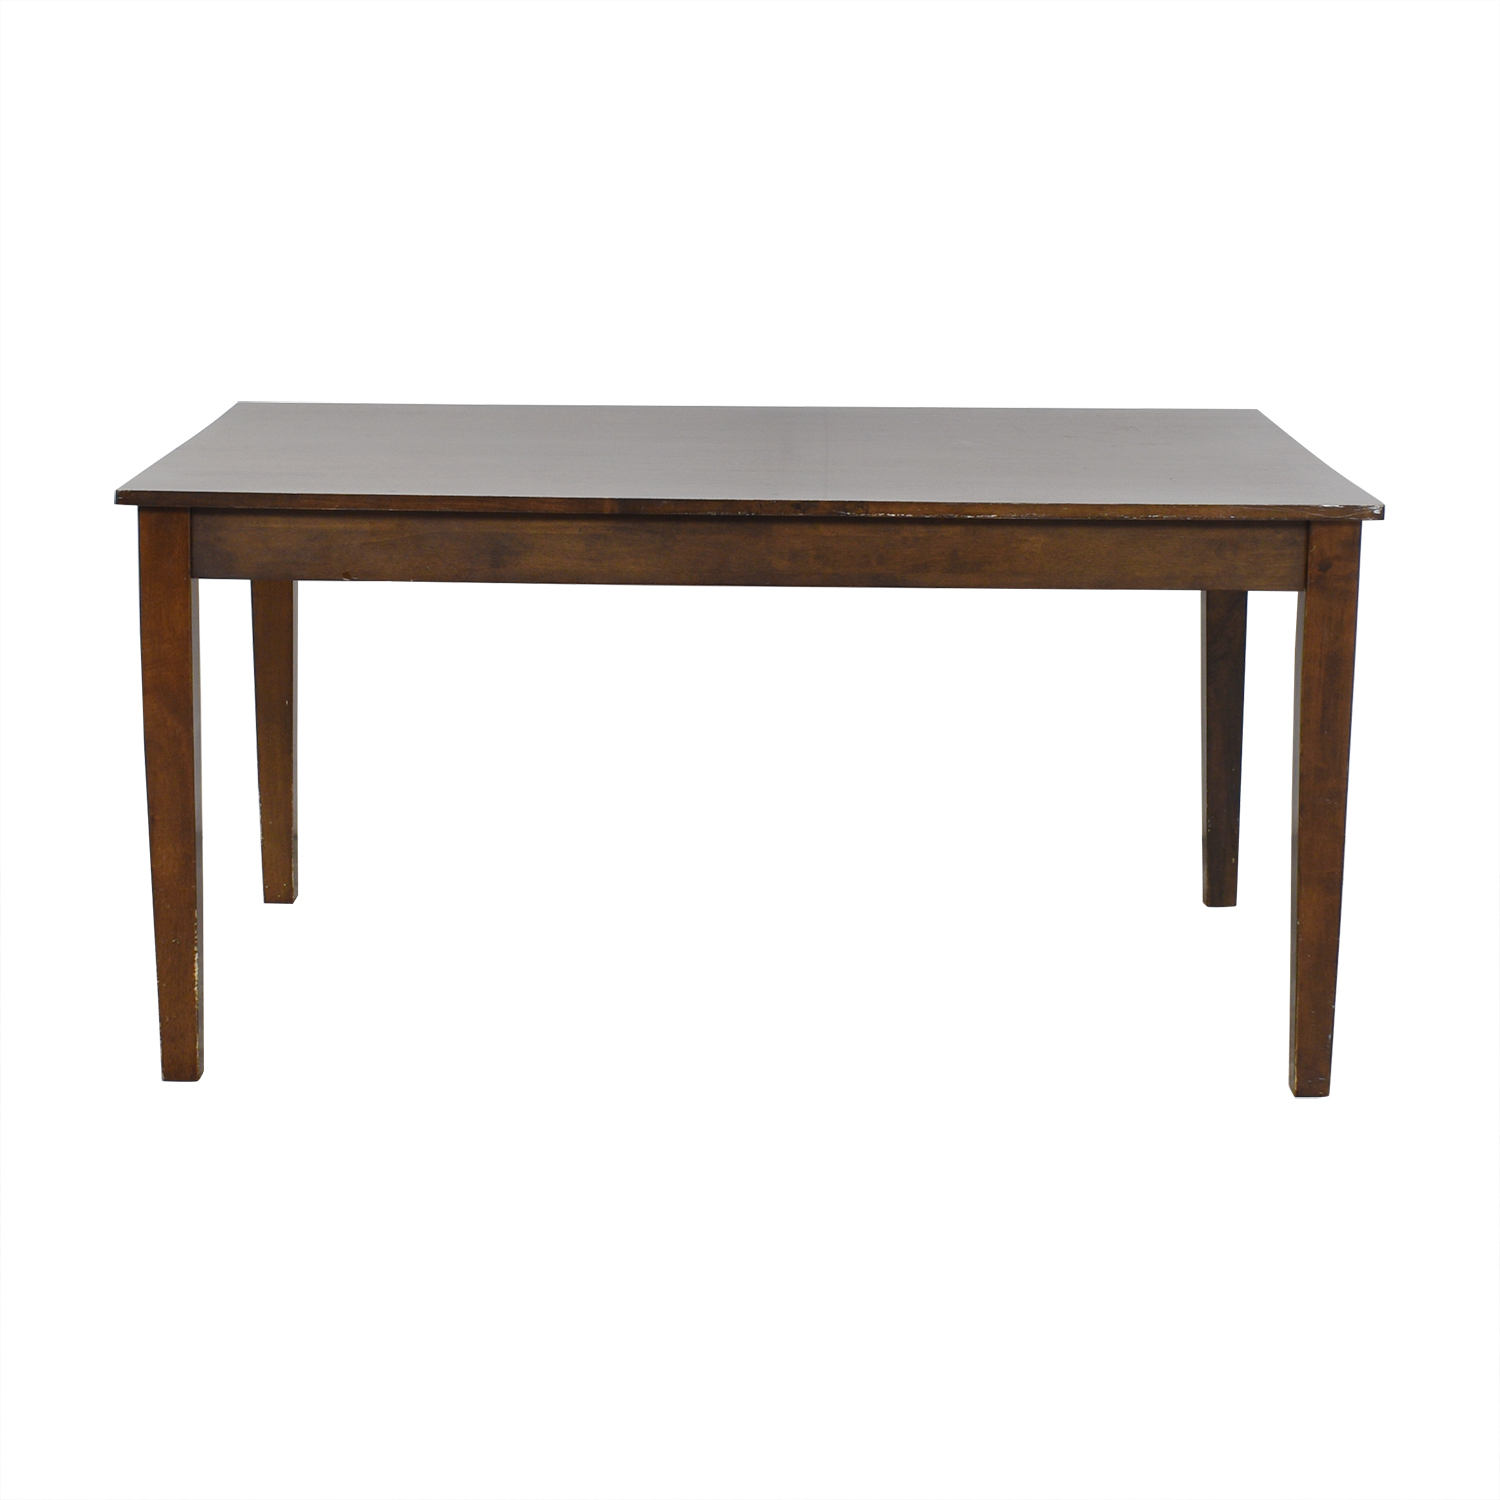 Poundex Poundex Dining Table used